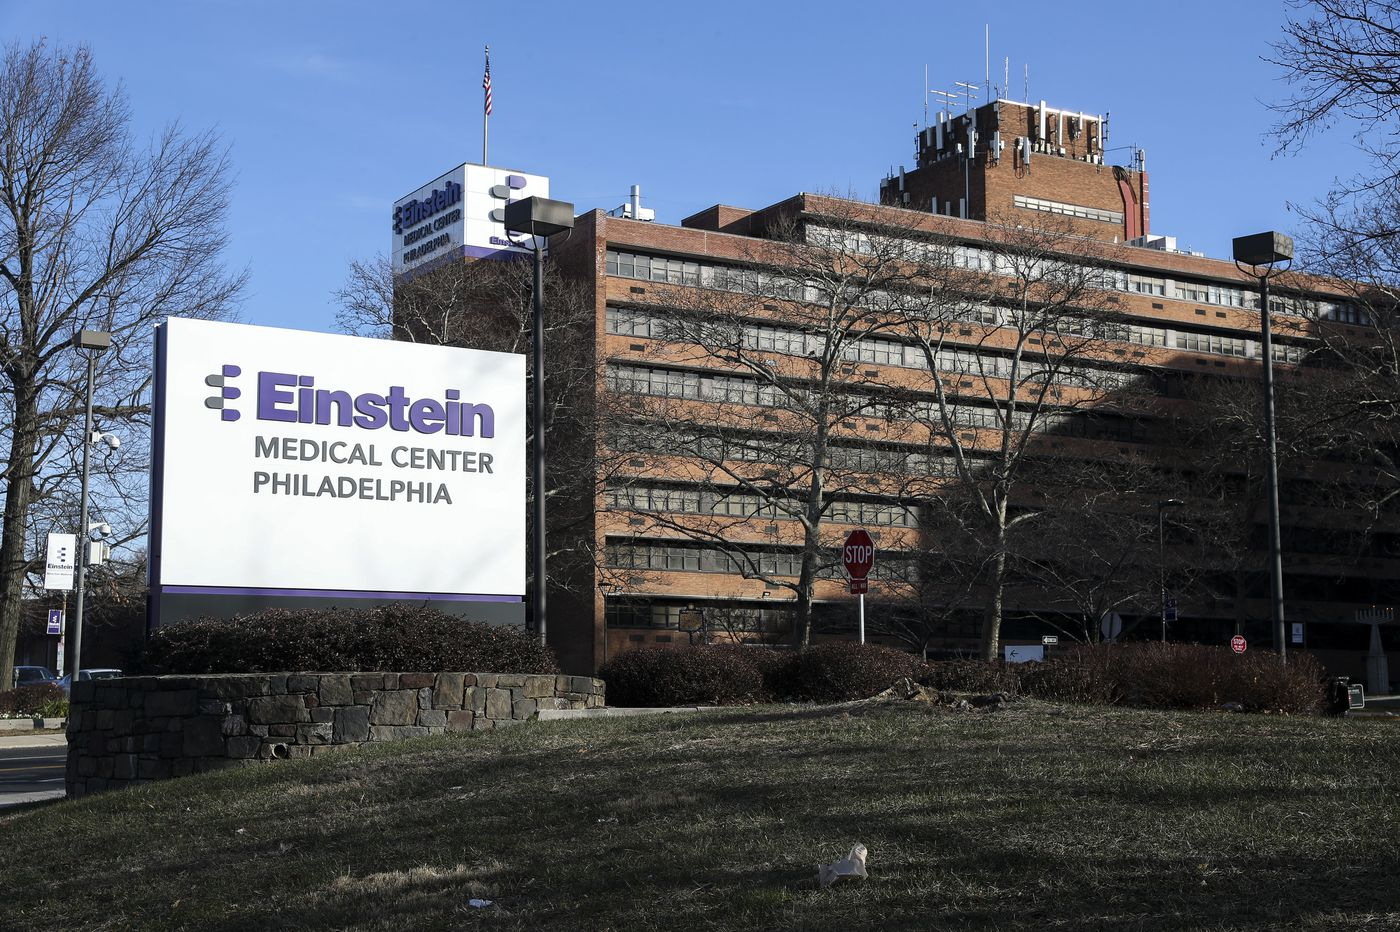 Jefferson said it would acquire Einstein Healthcare over a year ago. Why is it still pending?